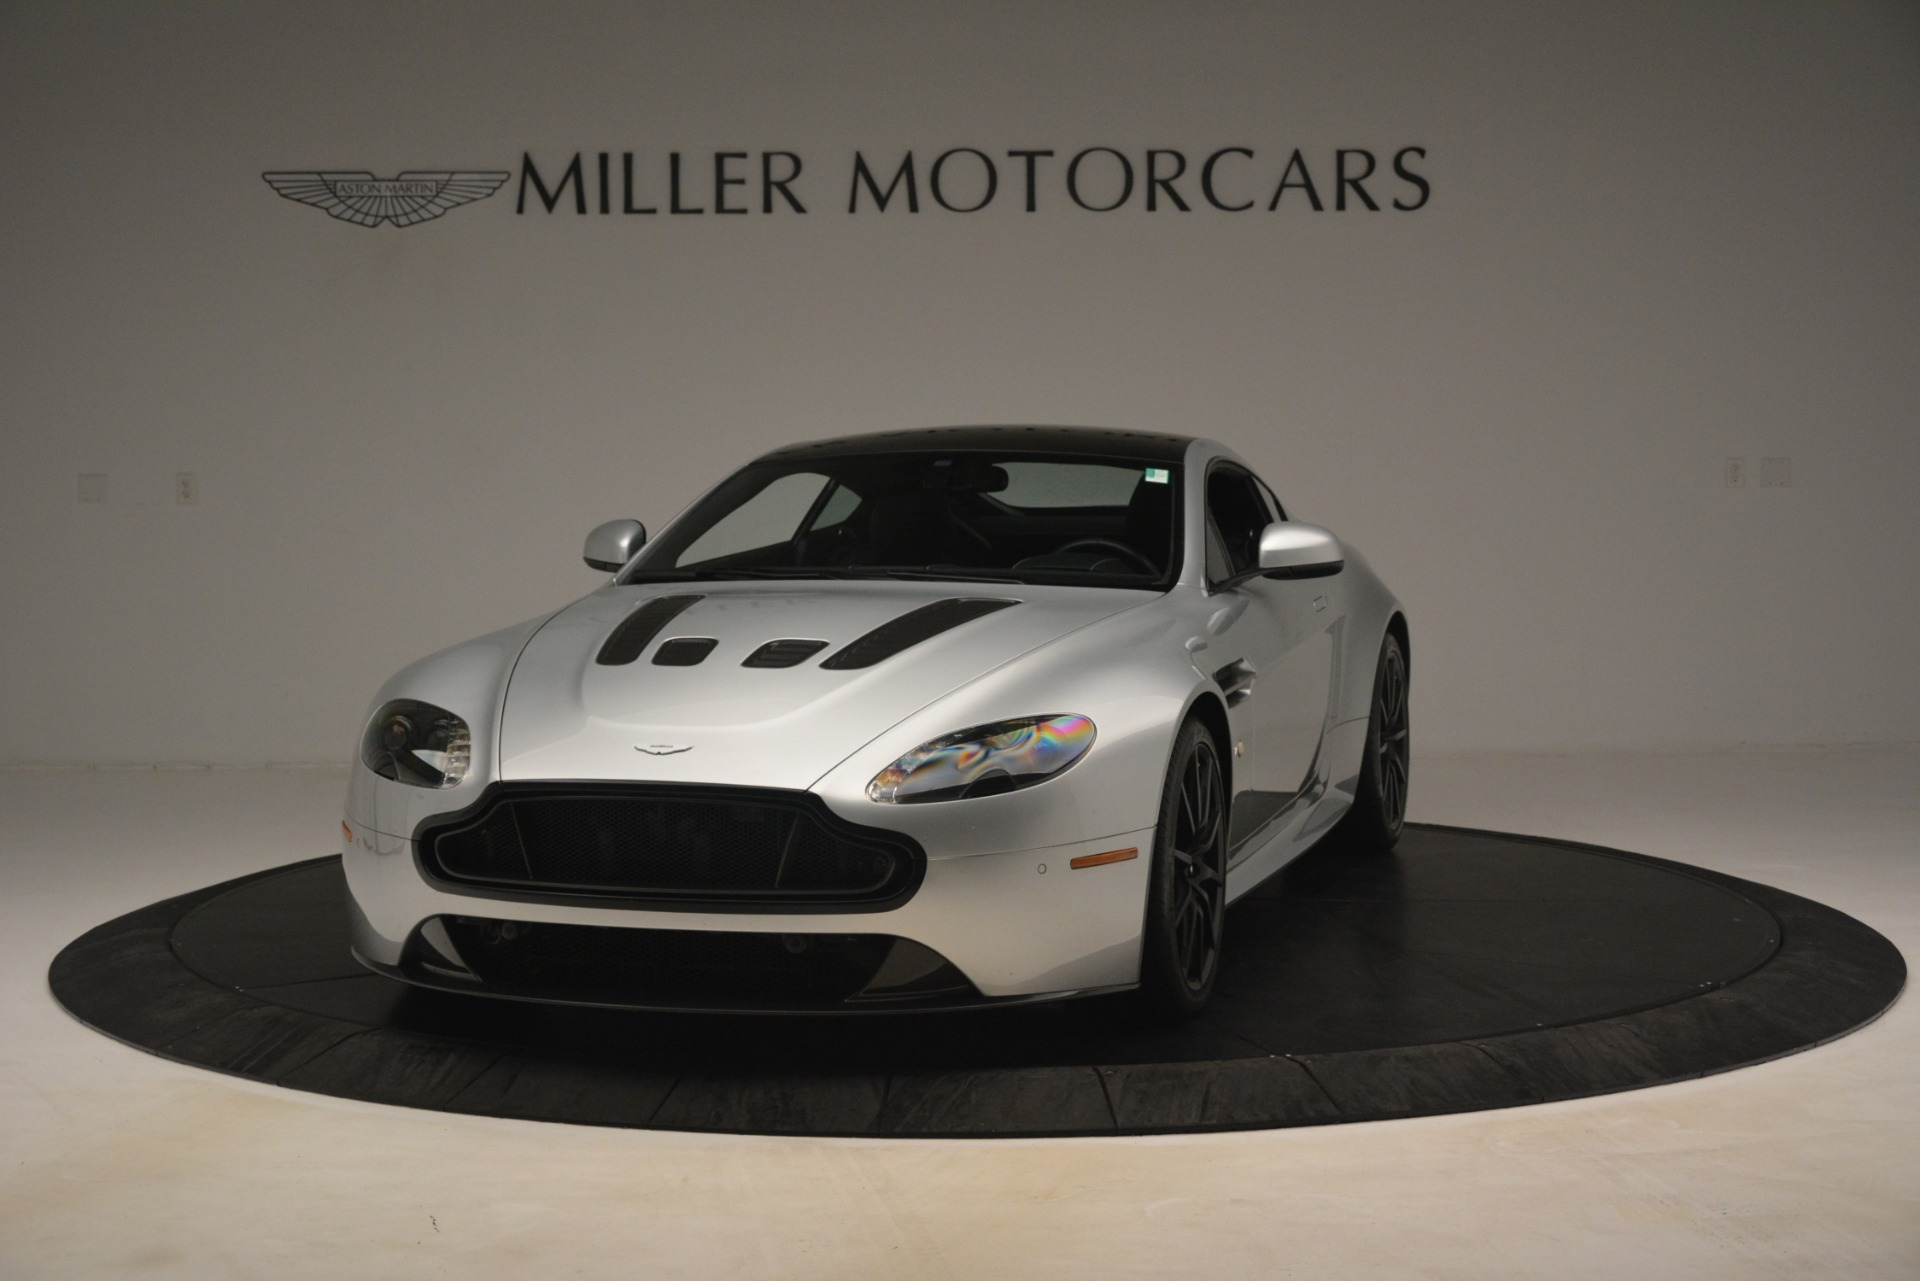 Used 2015 Aston Martin V12 Vantage S Coupe For Sale In Greenwich, CT. Alfa Romeo of Greenwich, 7577 3206_p2